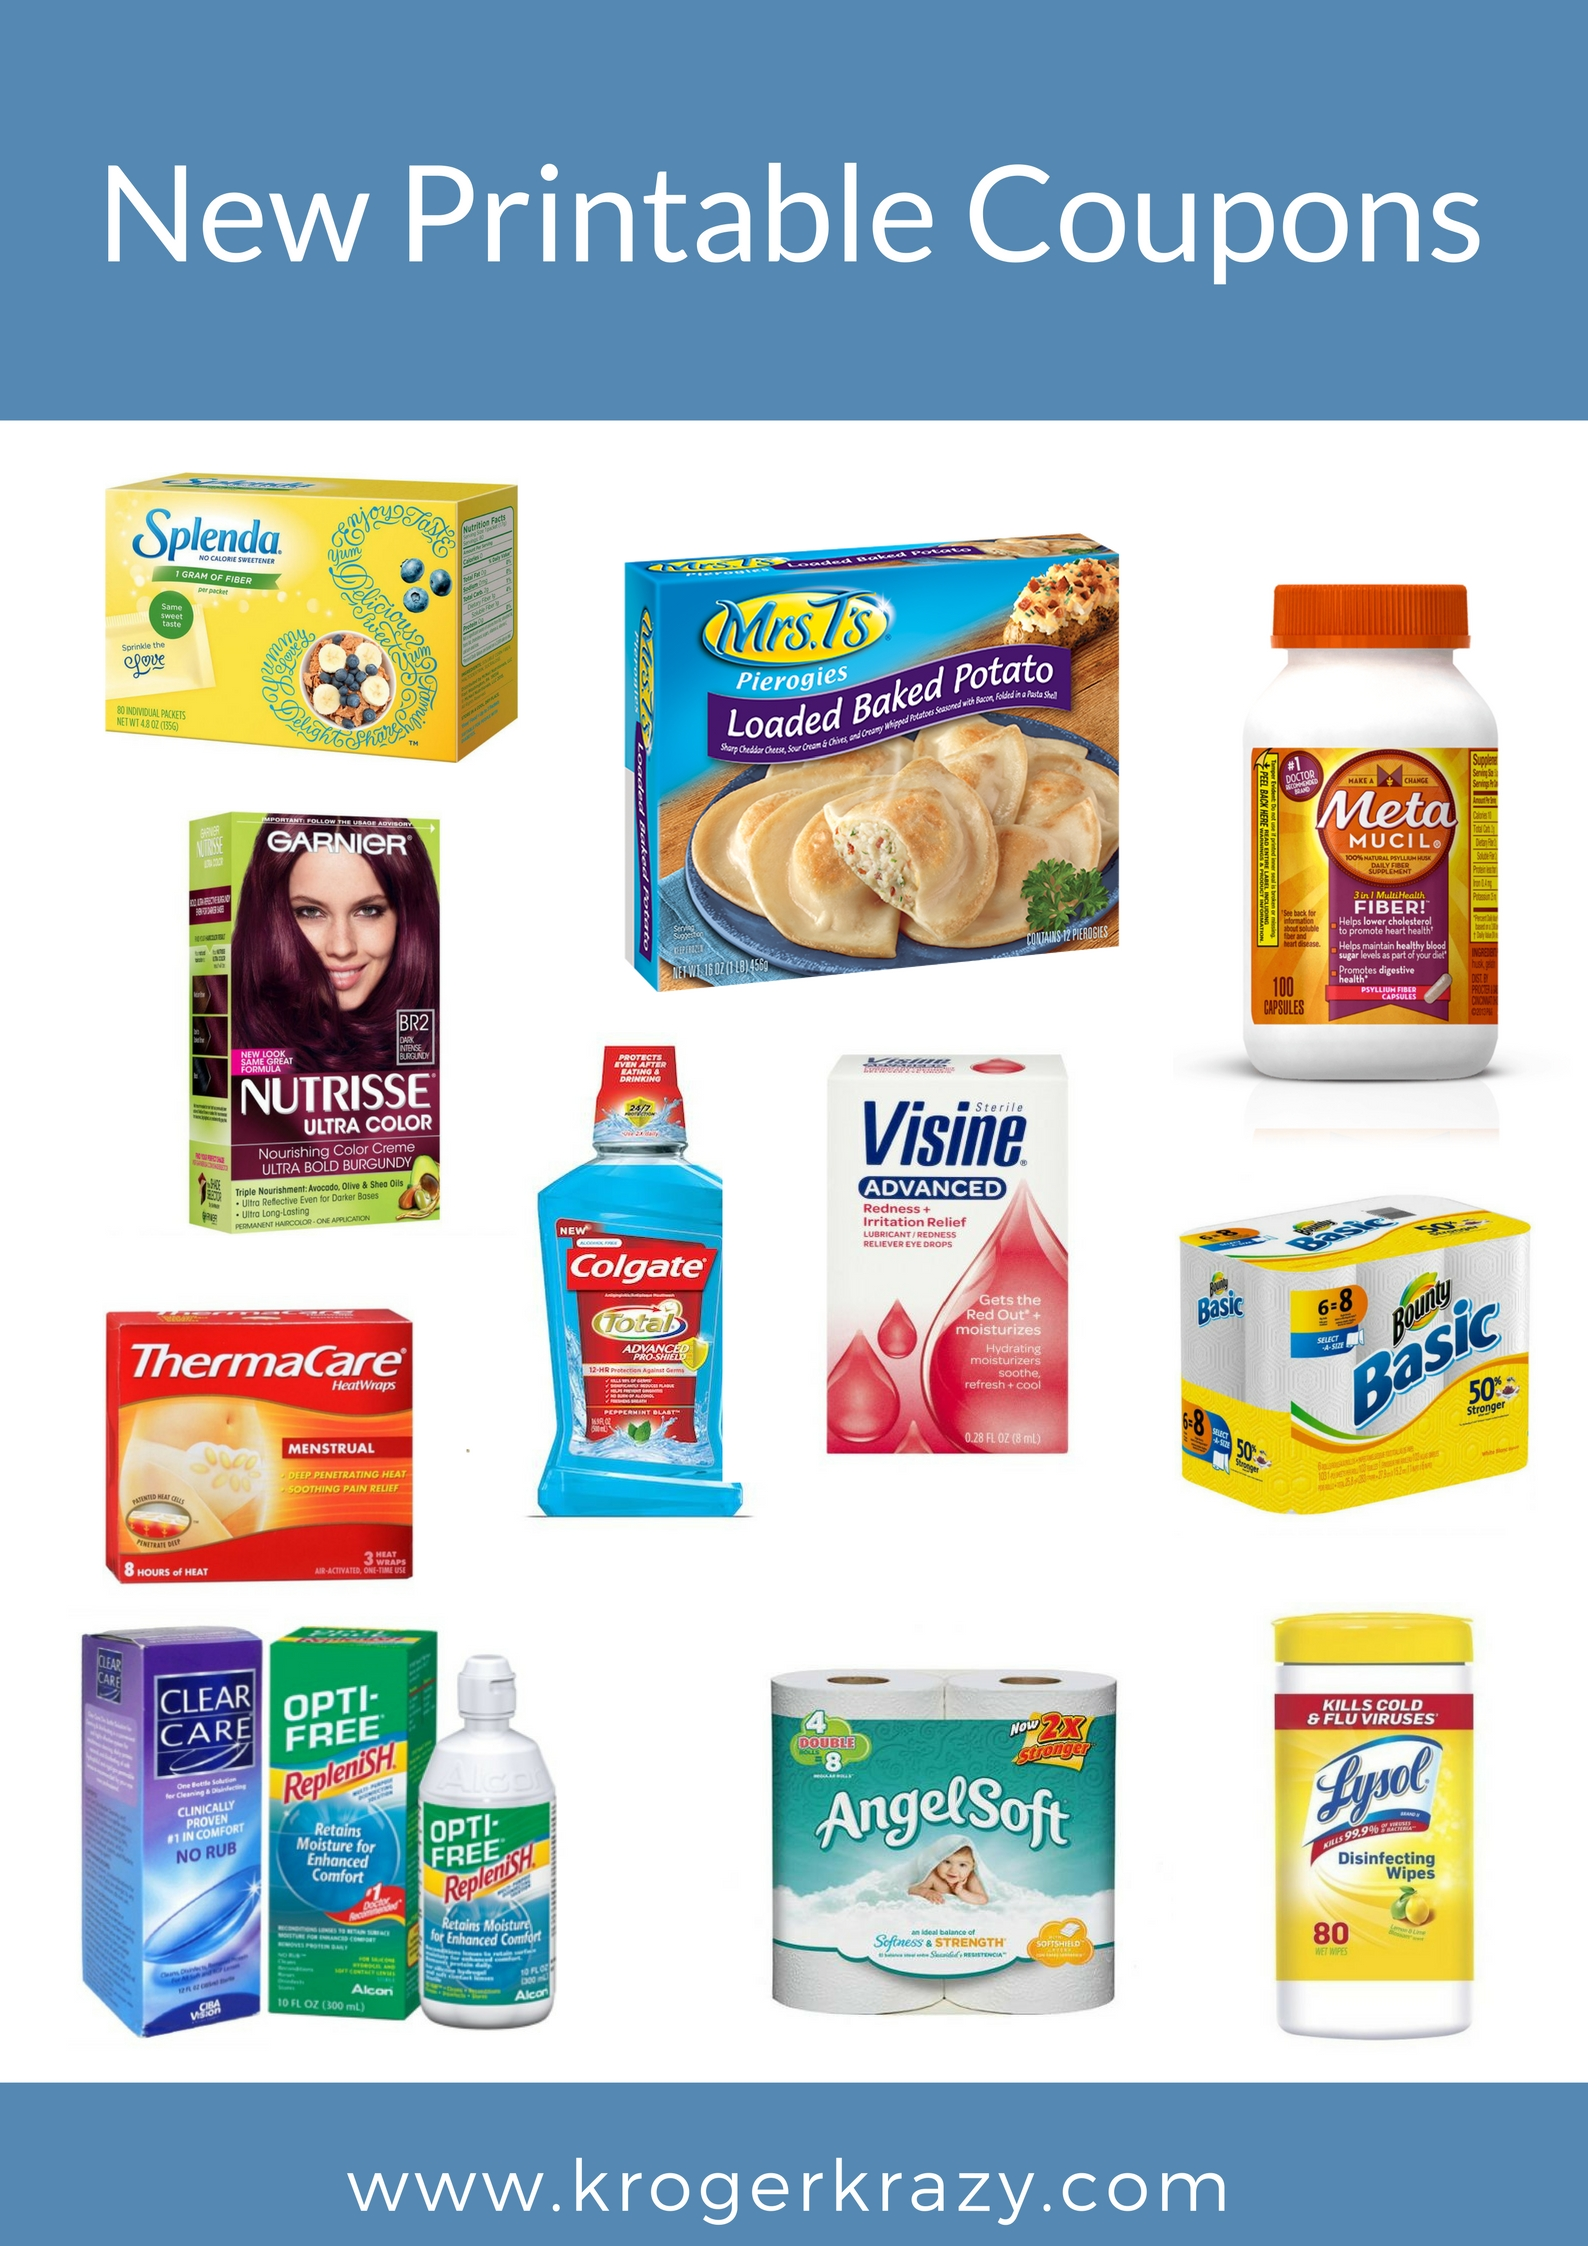 new printable coupons! l'oreal, angel soft, bounty, thermacare